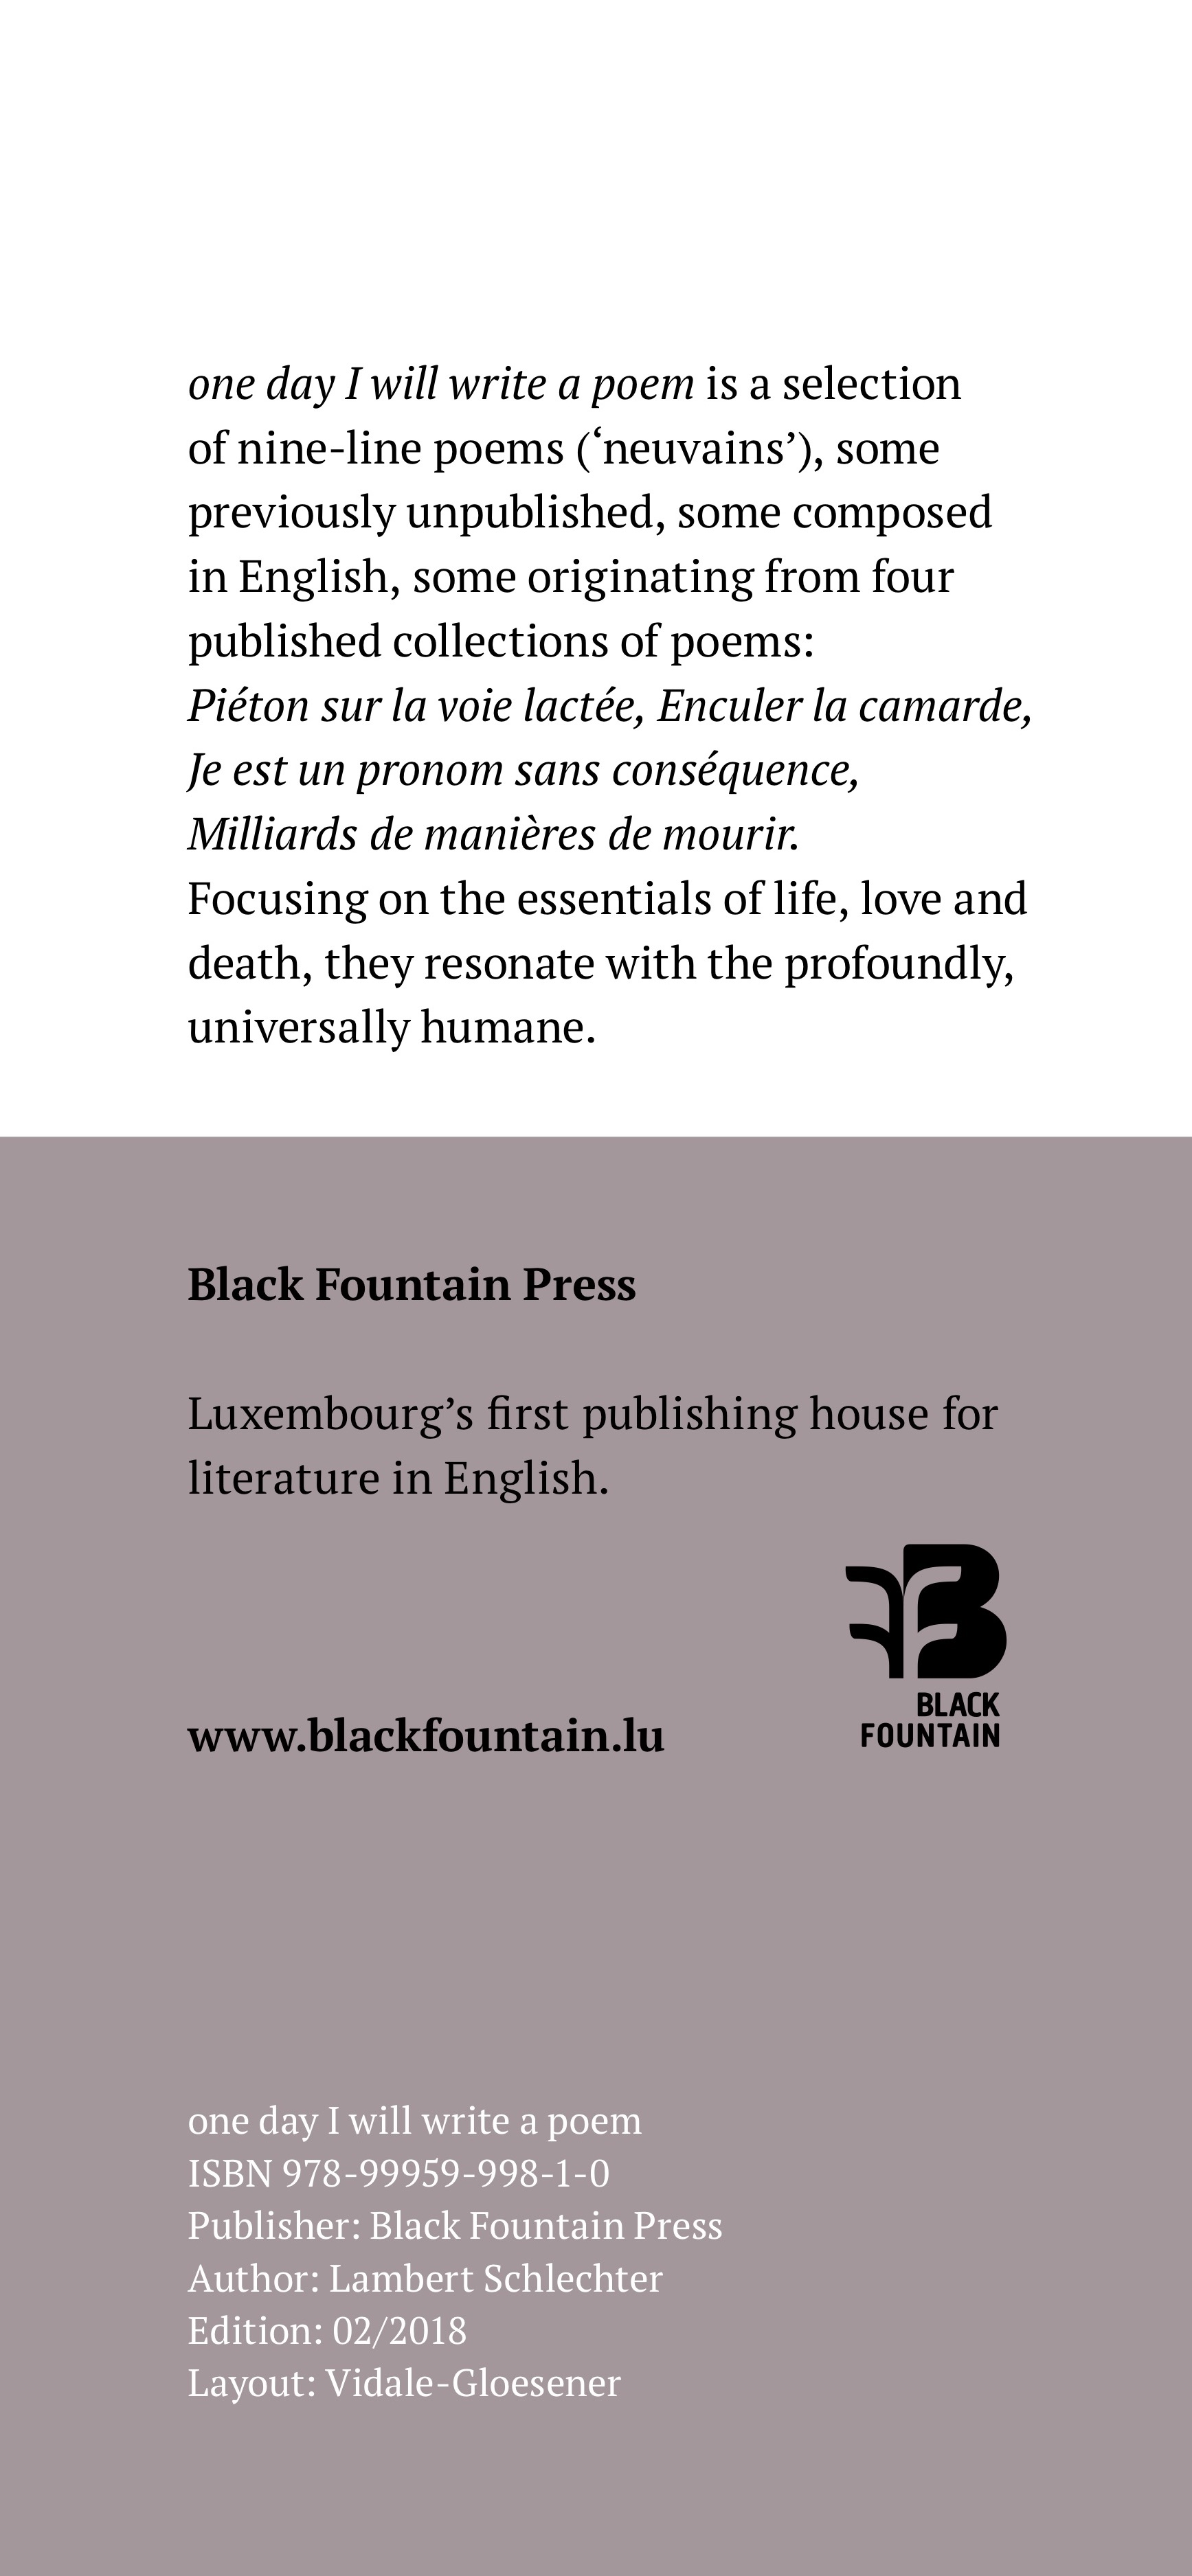 One Day I Will Write A Poem Black Fountain Press